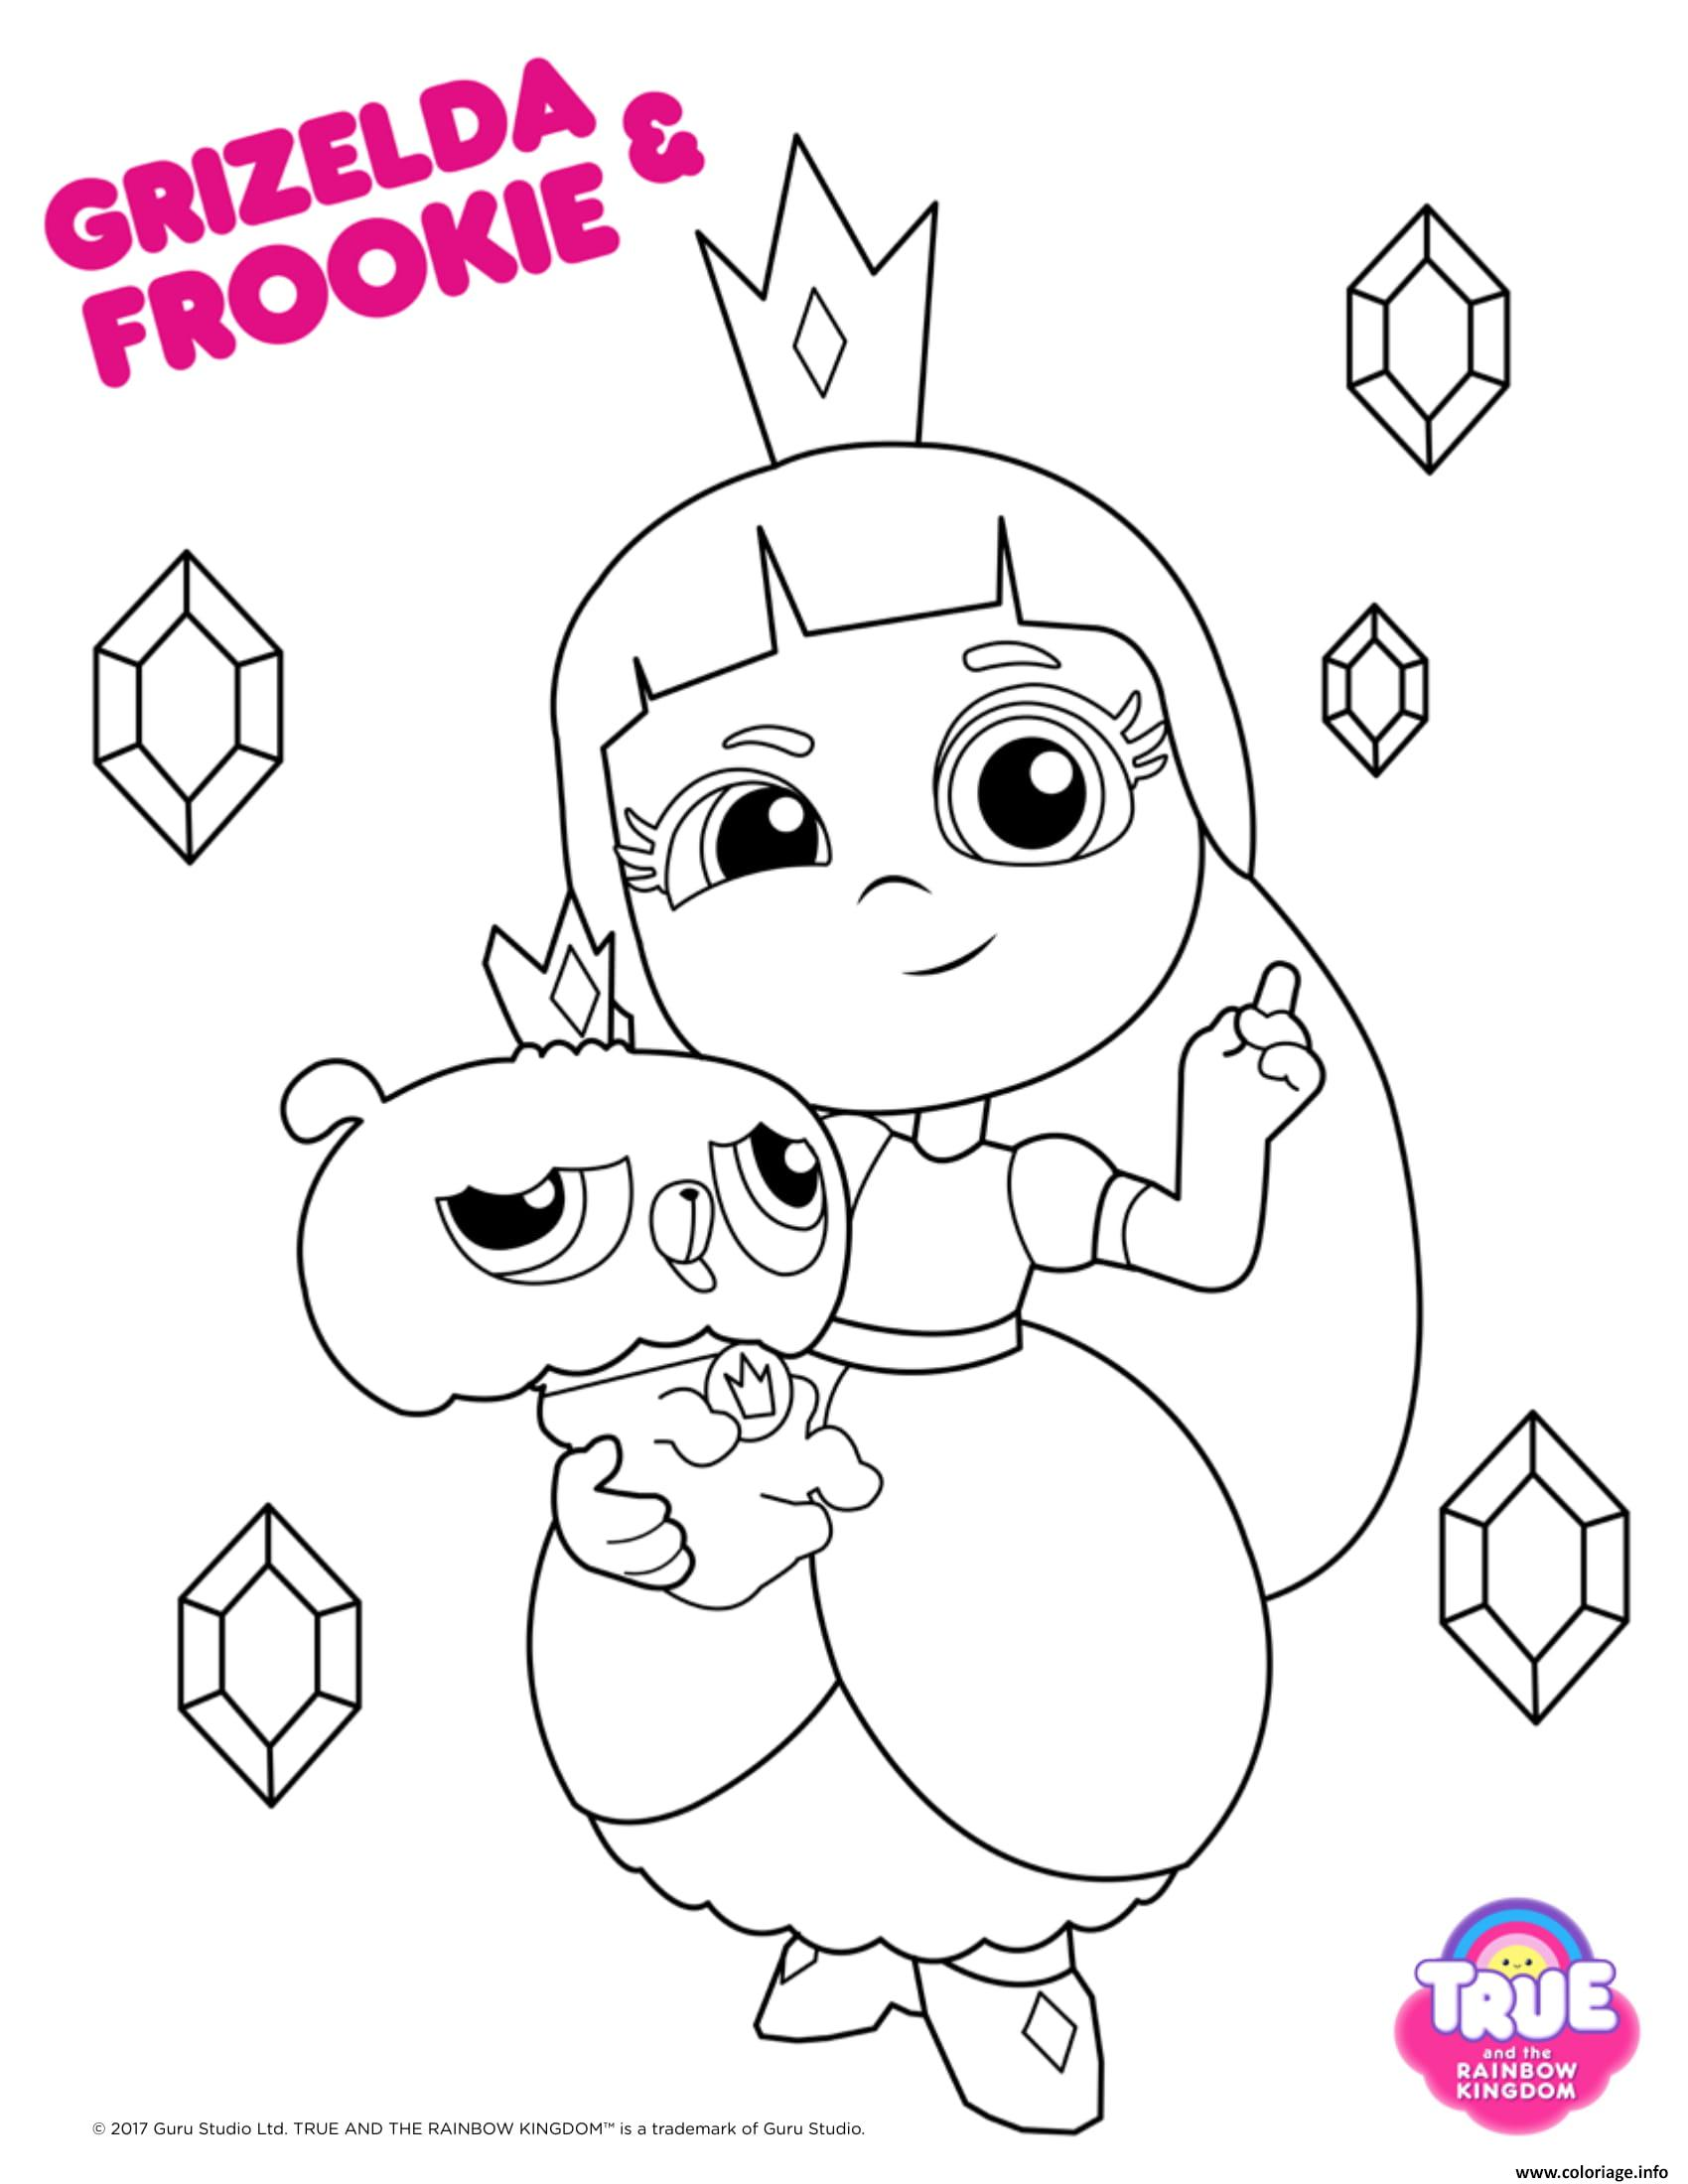 true and the rainbow kingdom coloring pages coloriage grizelda frookie 1 true and the rainbow kingdom